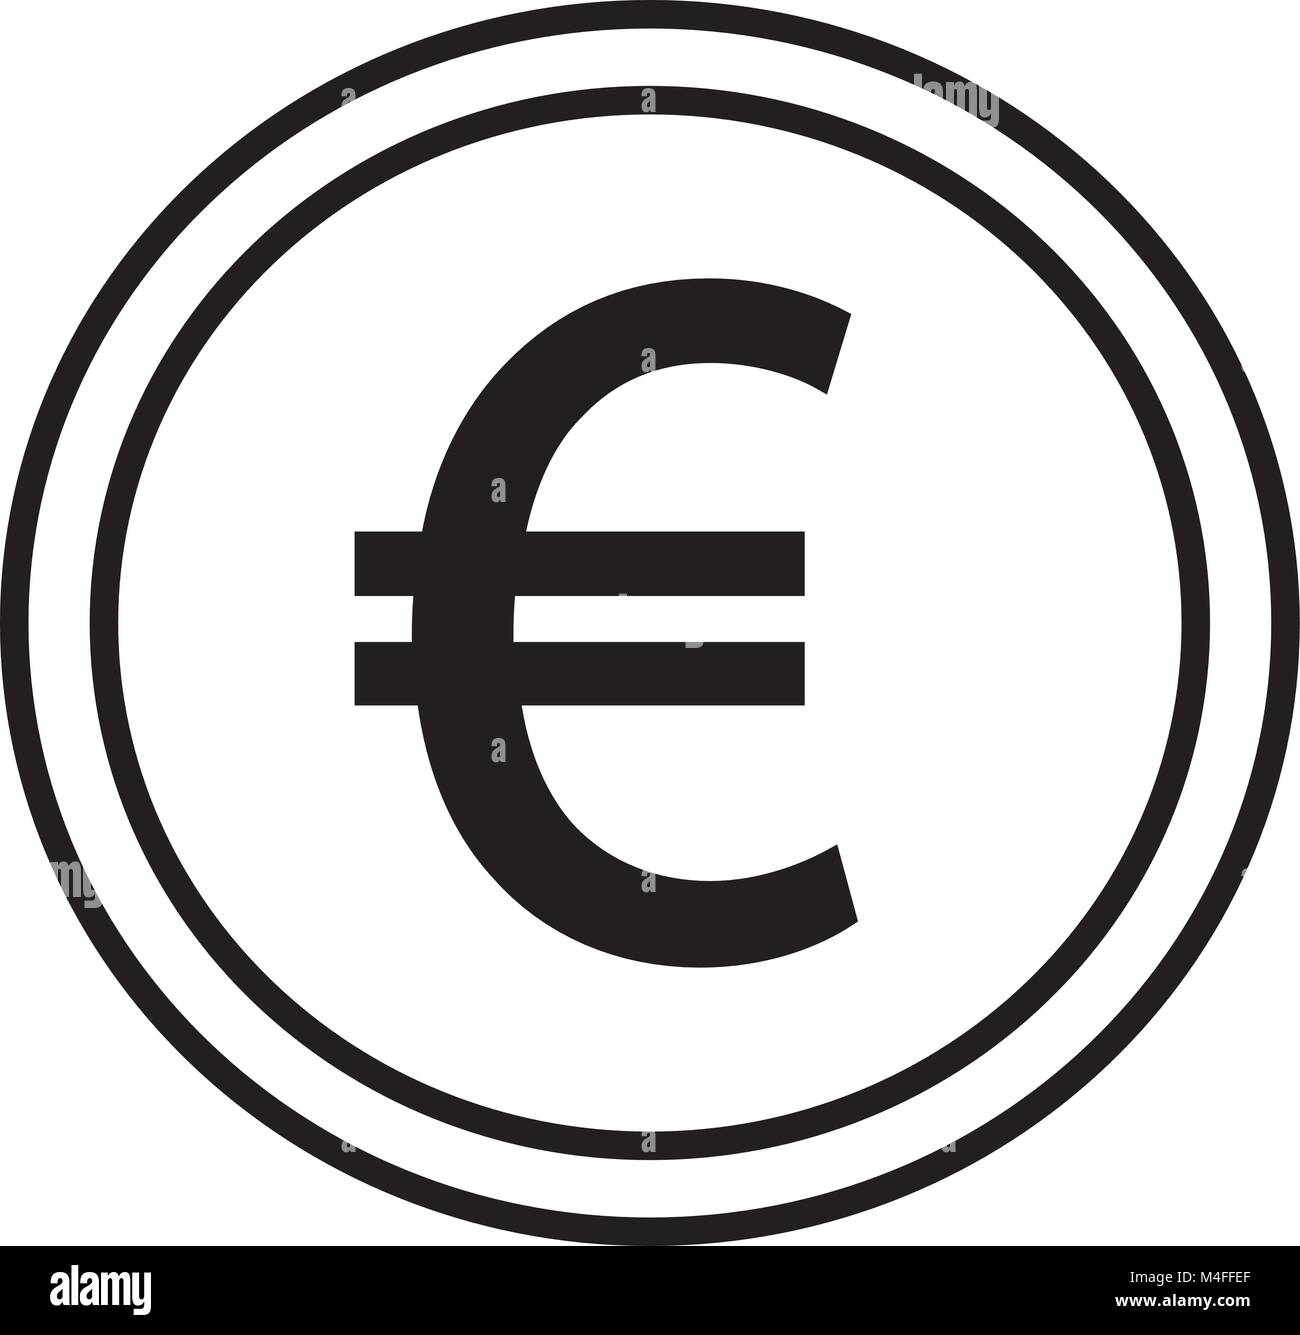 Icons illustration stock photos icons illustration stock images euro currency icon or logo vector over a coin symbol for european union bank biocorpaavc Gallery